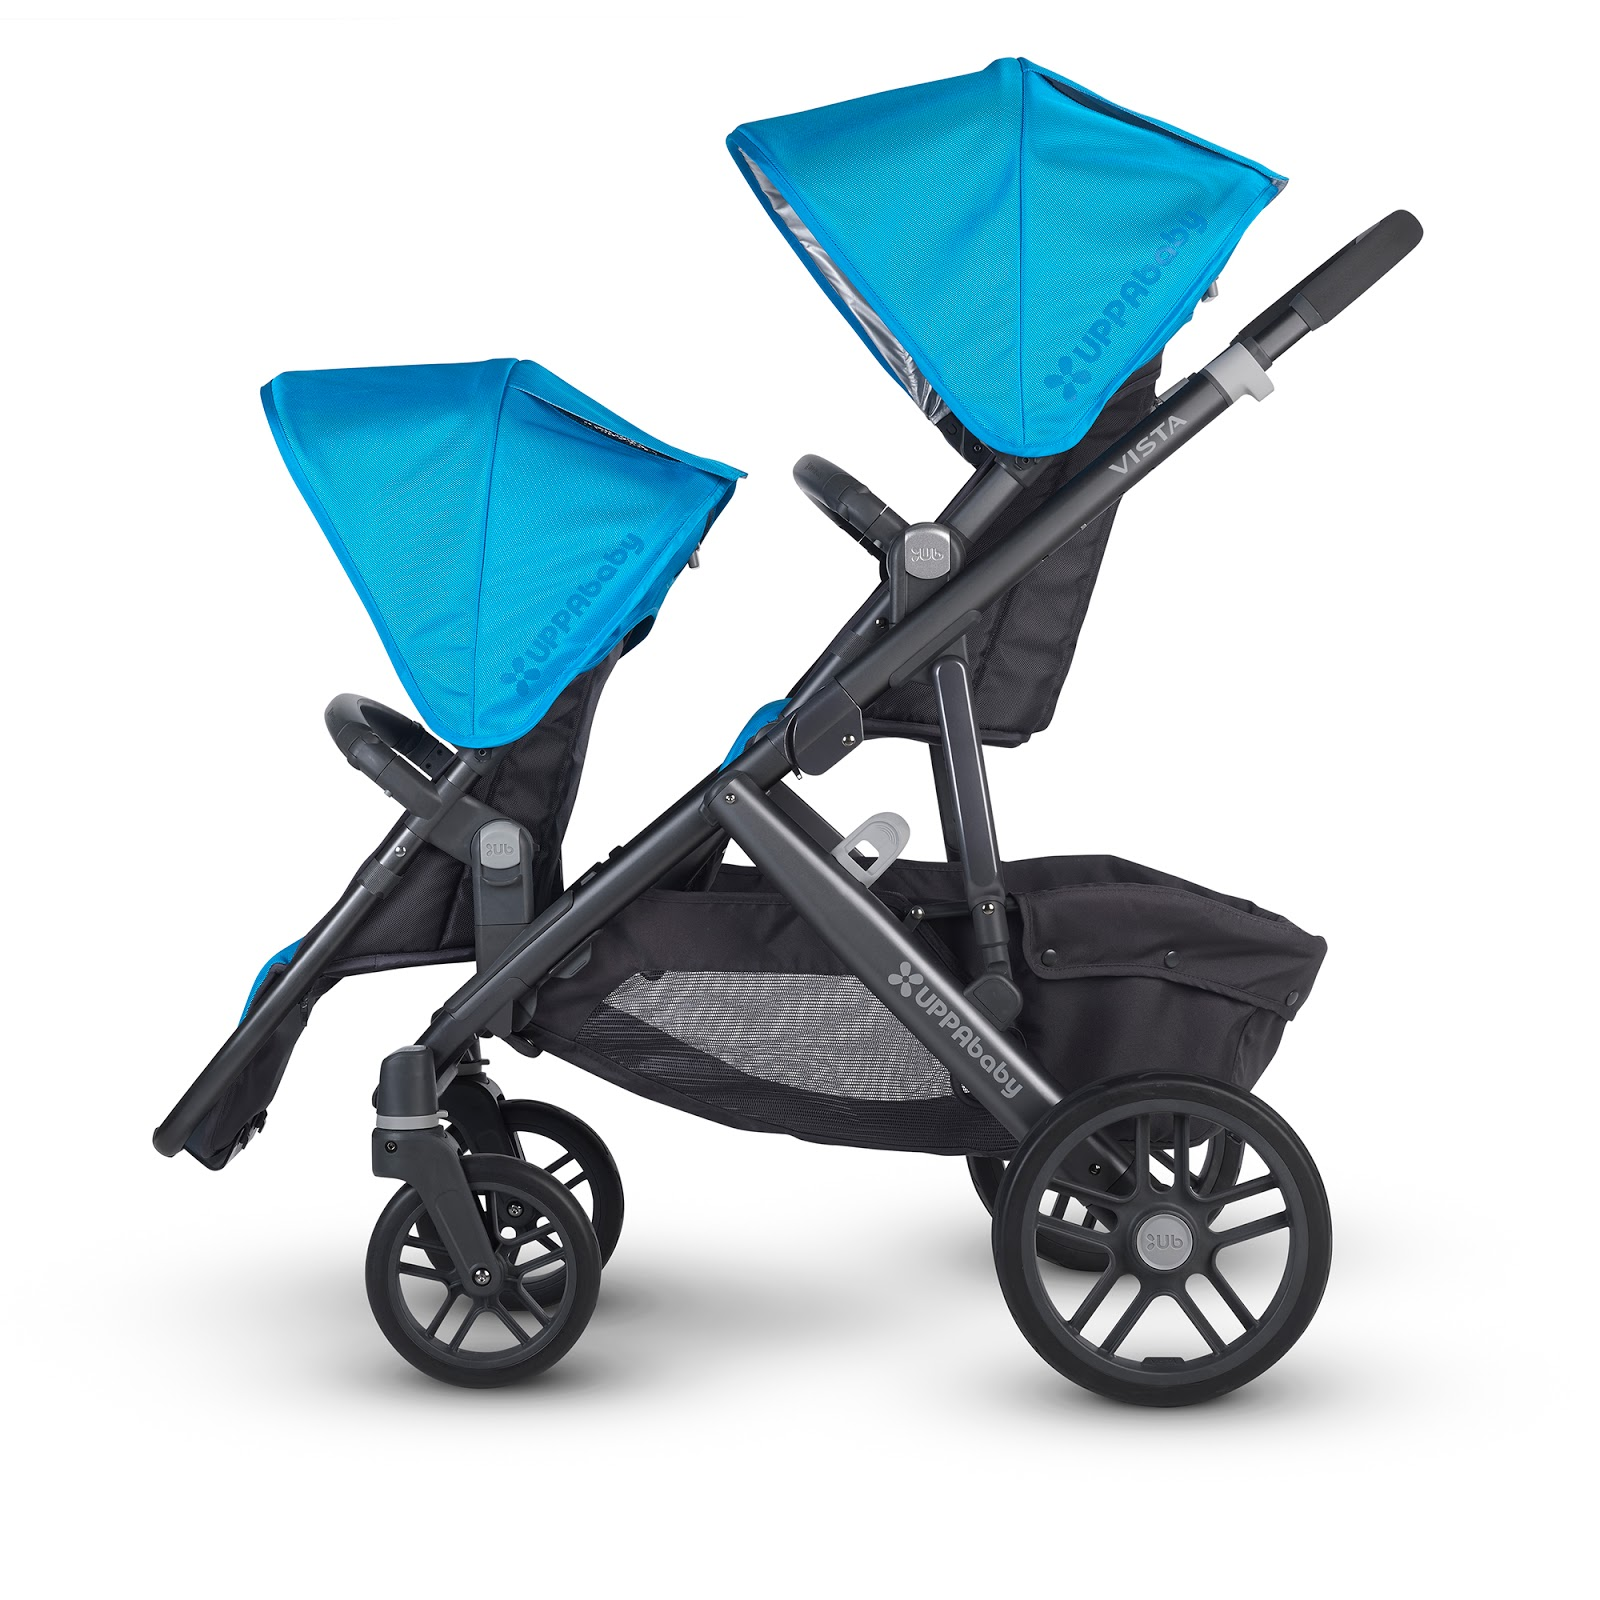 Baby Jogger Double Pram Daily Baby Finds Reviews Best Strollers 2016 Best